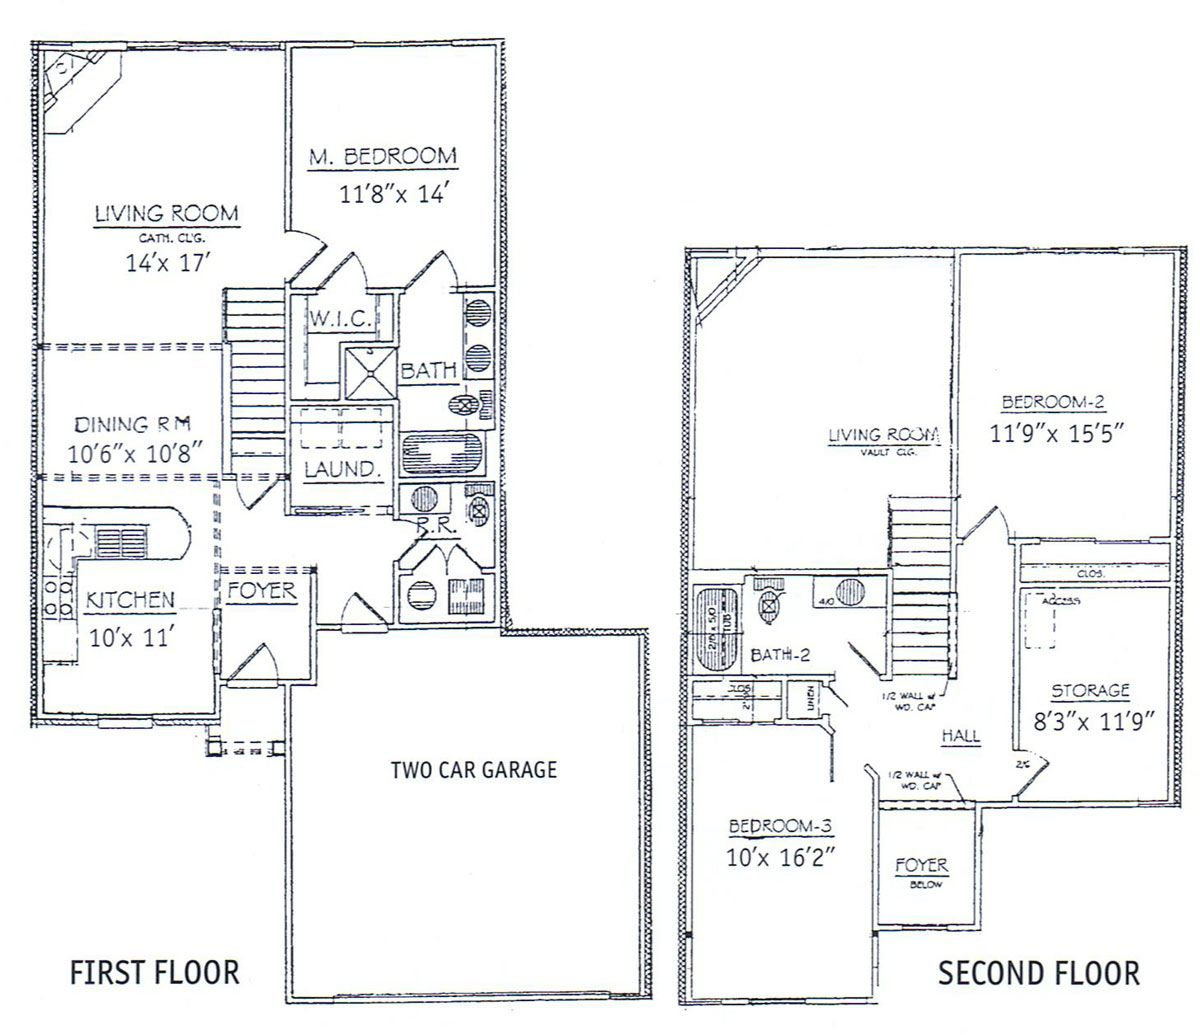 3 bedrooms floor plans 2 story bdrm basement the two three bedroom - Two Storey House Plans